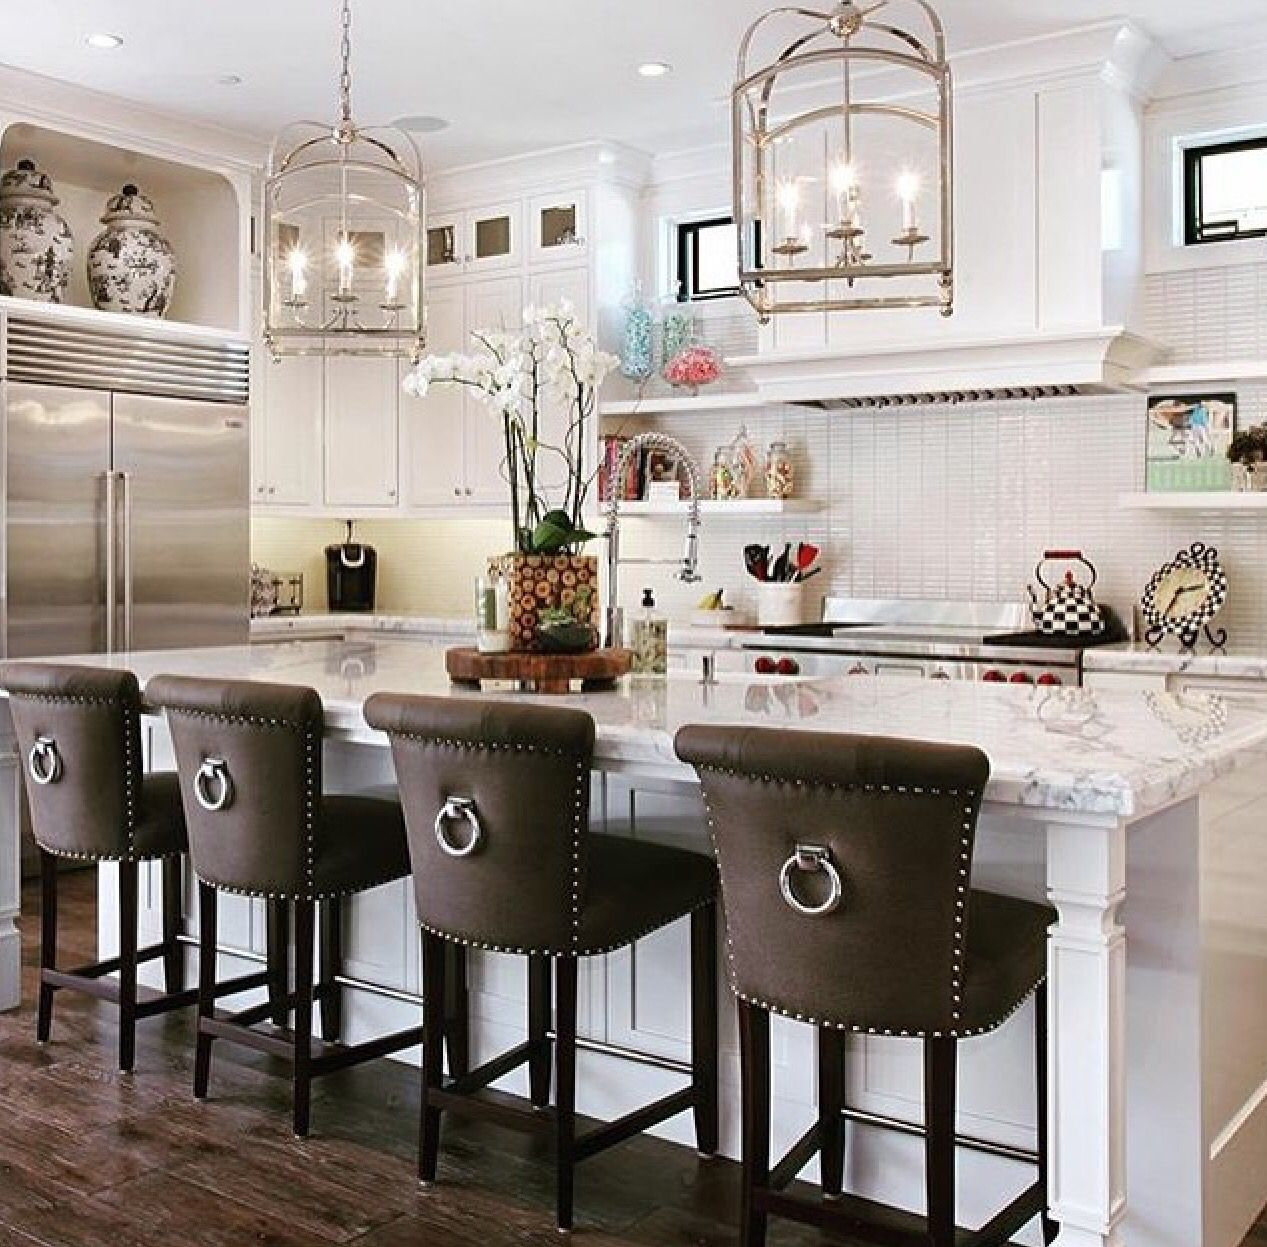 Kitchen Island With Bar Stools You'll Love in 9   VisualHunt